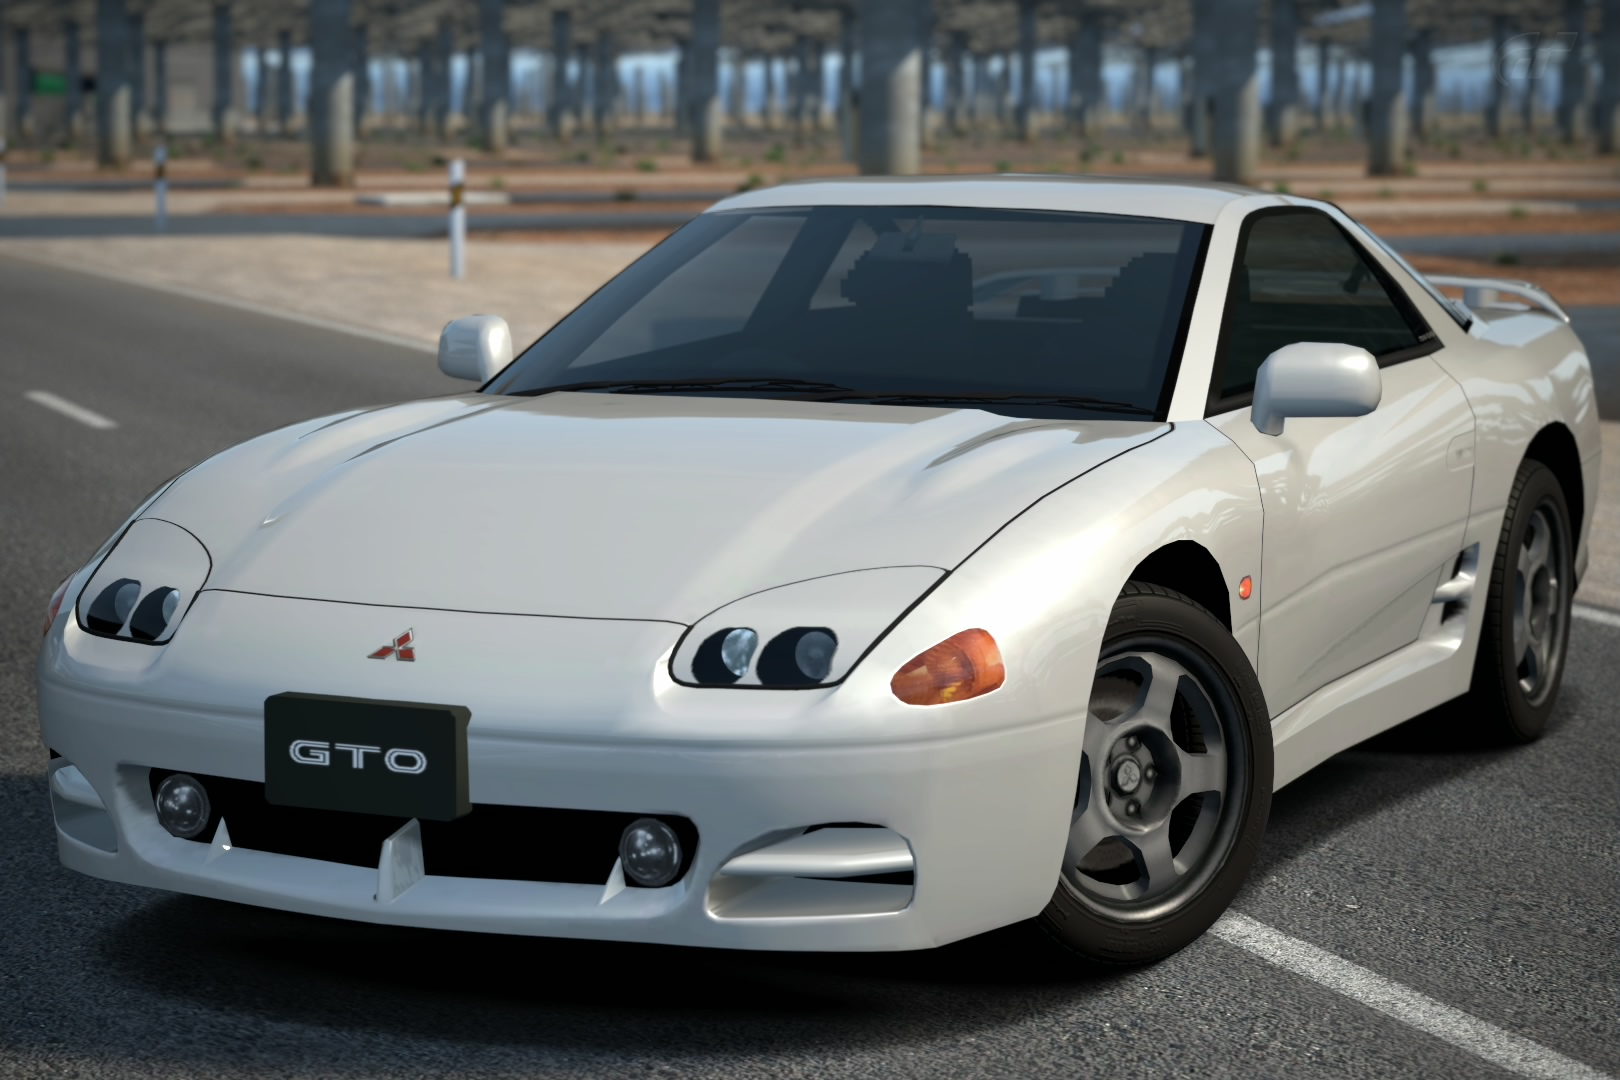 Mitsubishi GTO Twin Turbo '95